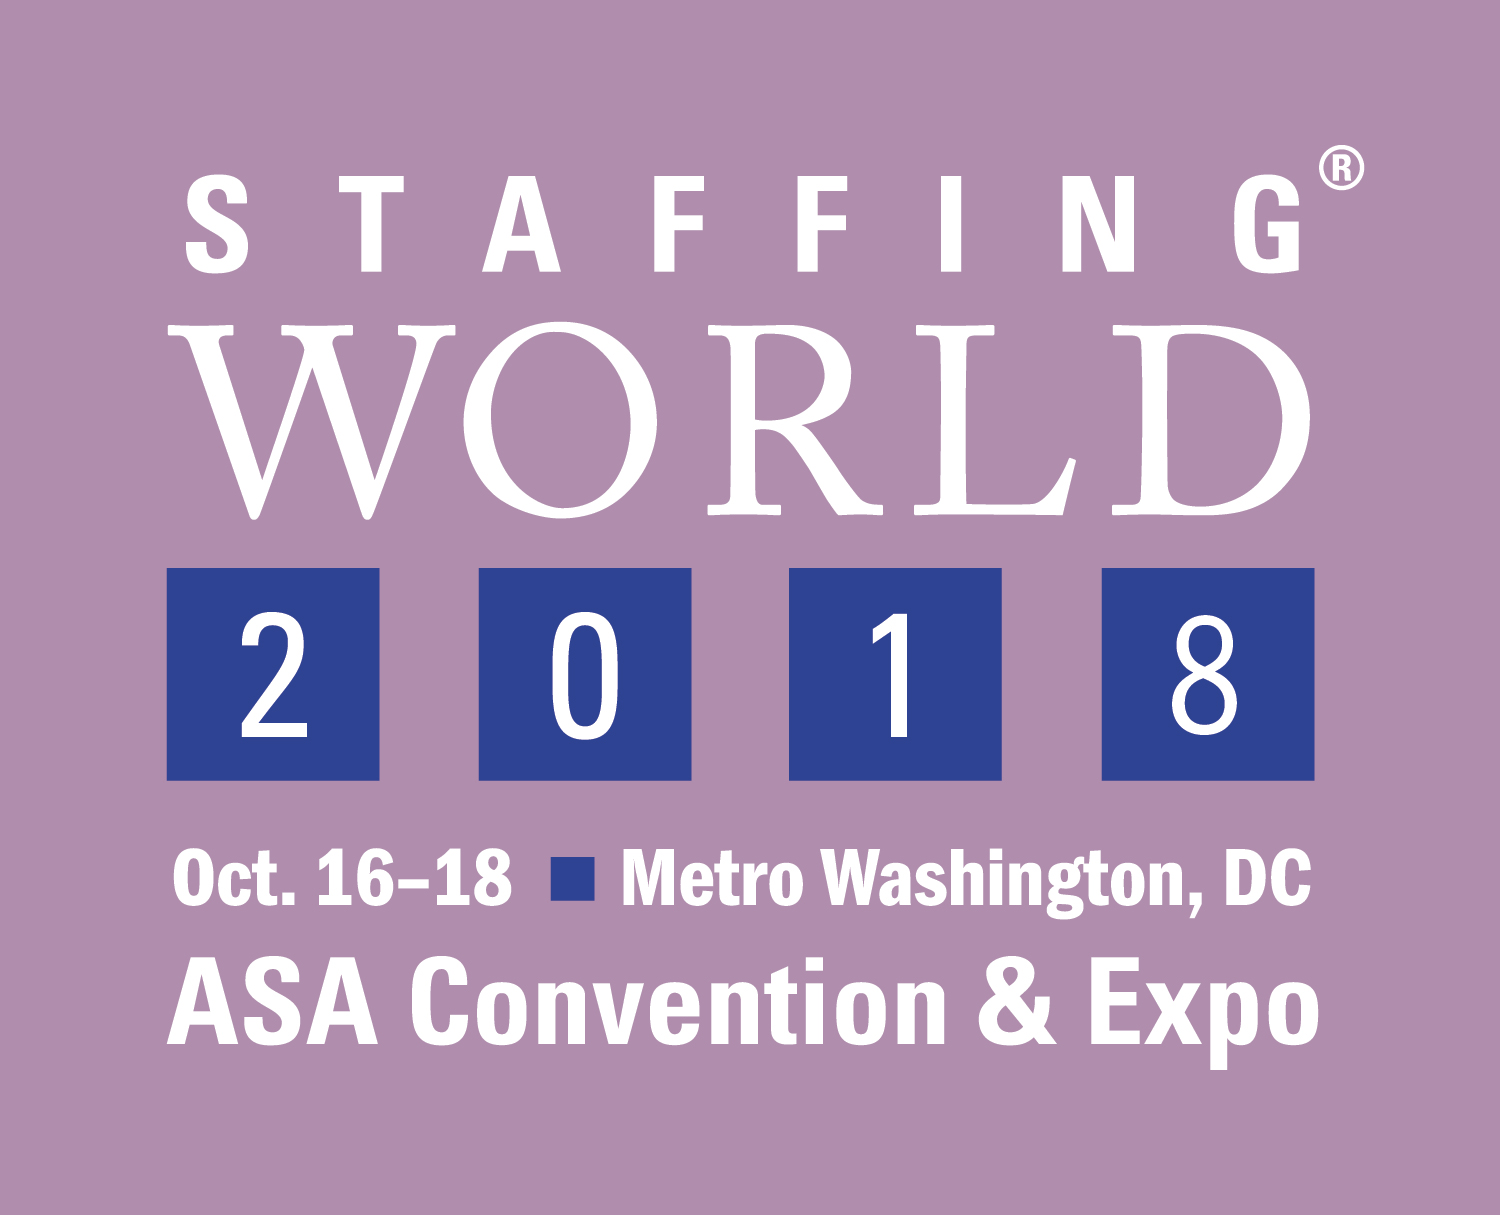 ASA Staffing World 2018